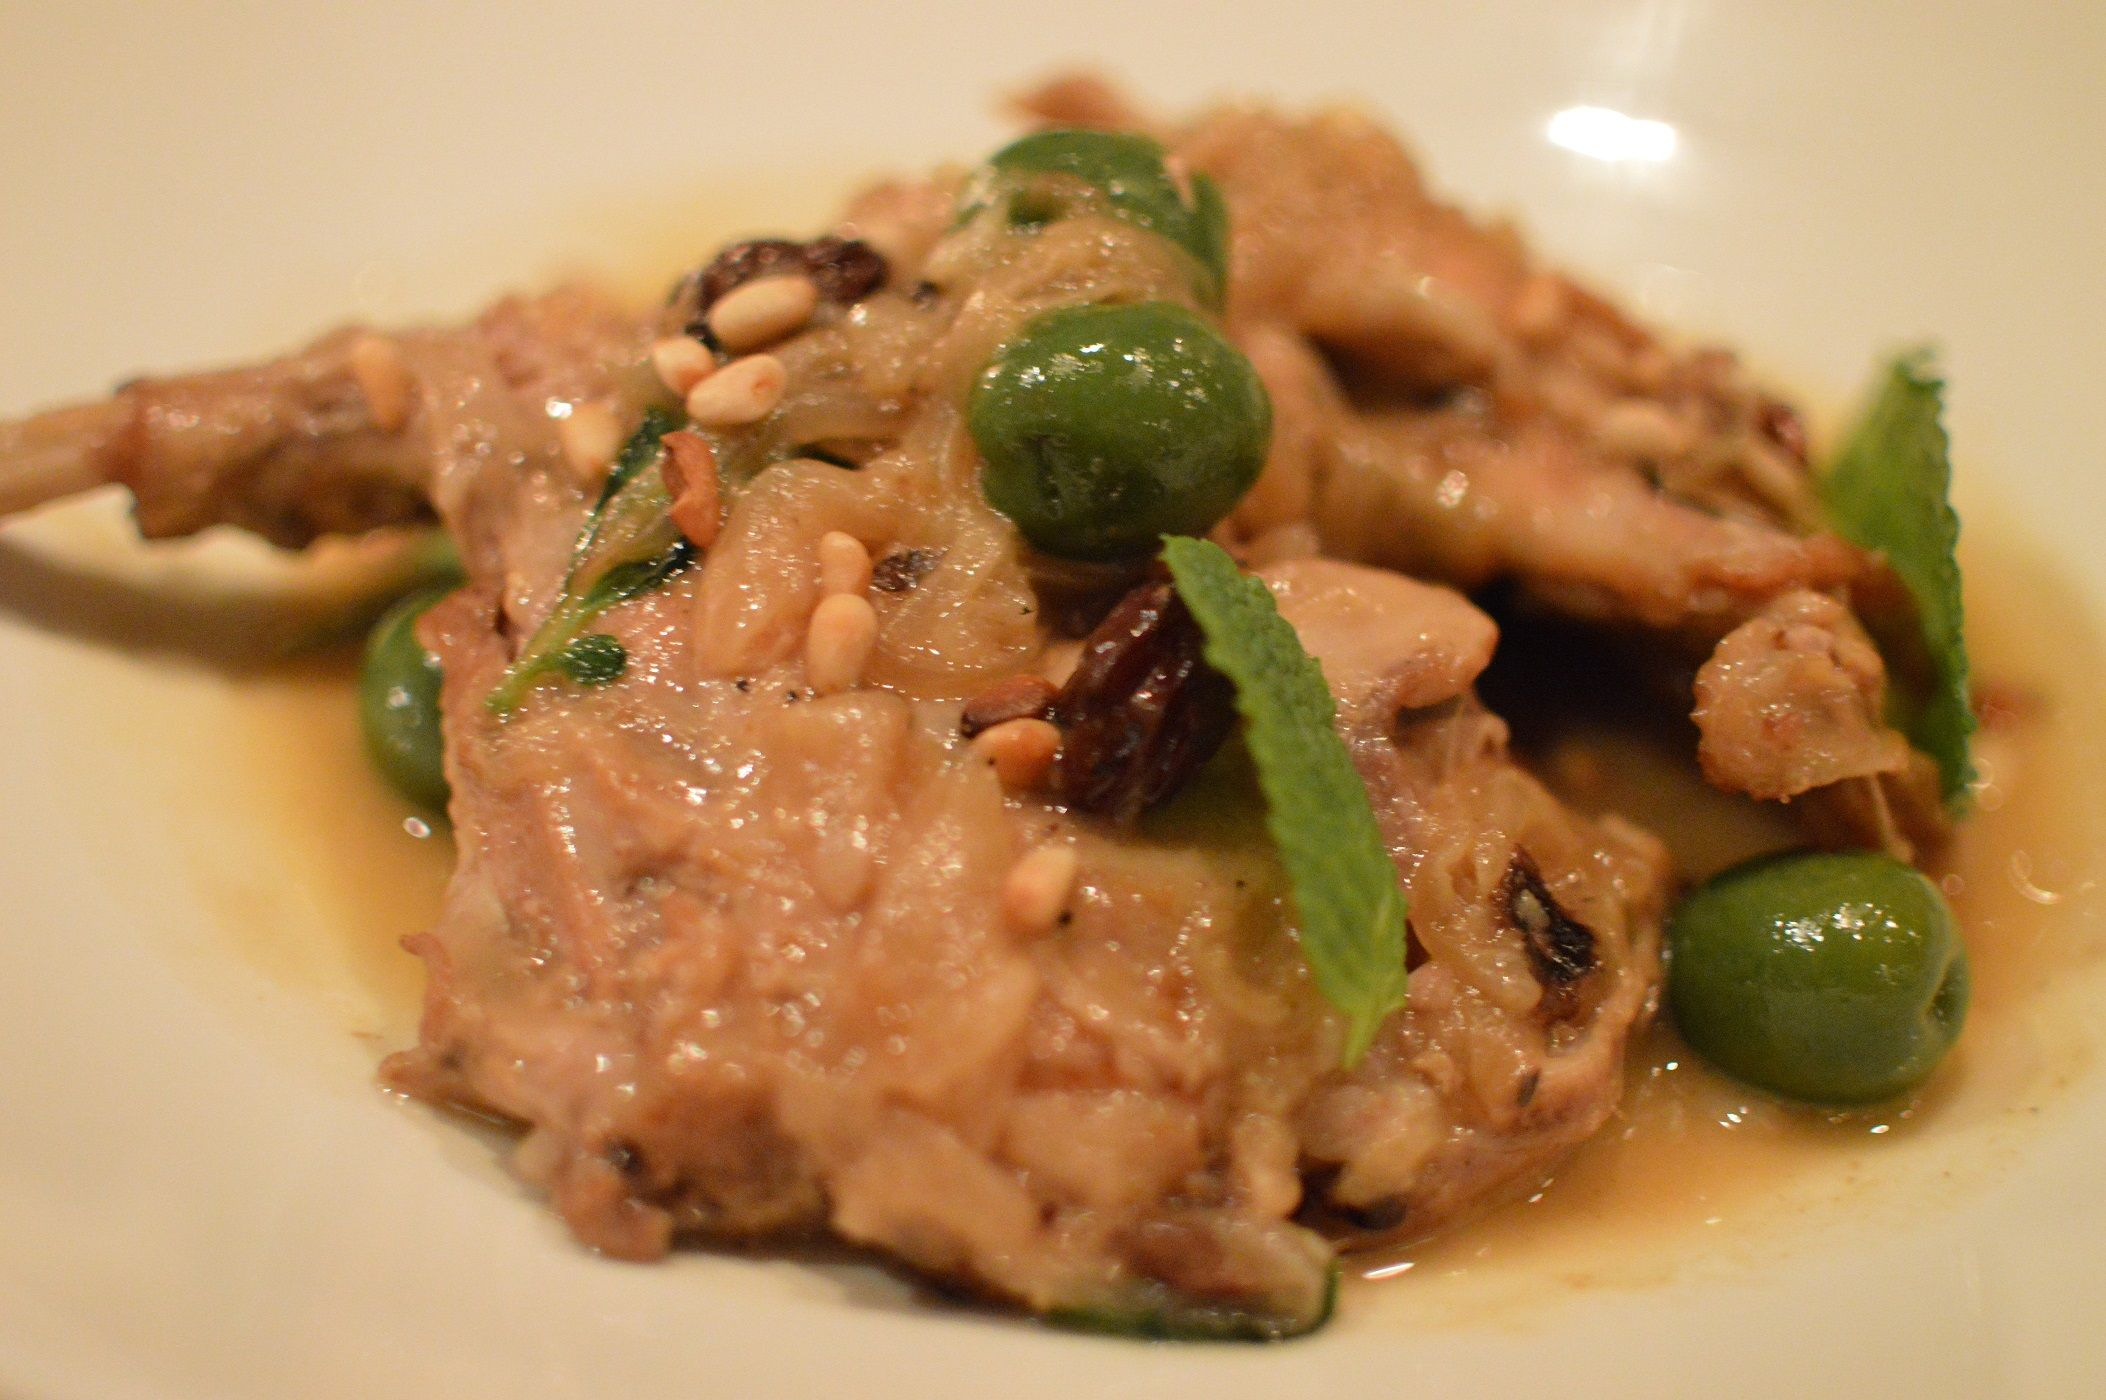 Braised rabbit w olives, capers, pine nuts & raisins